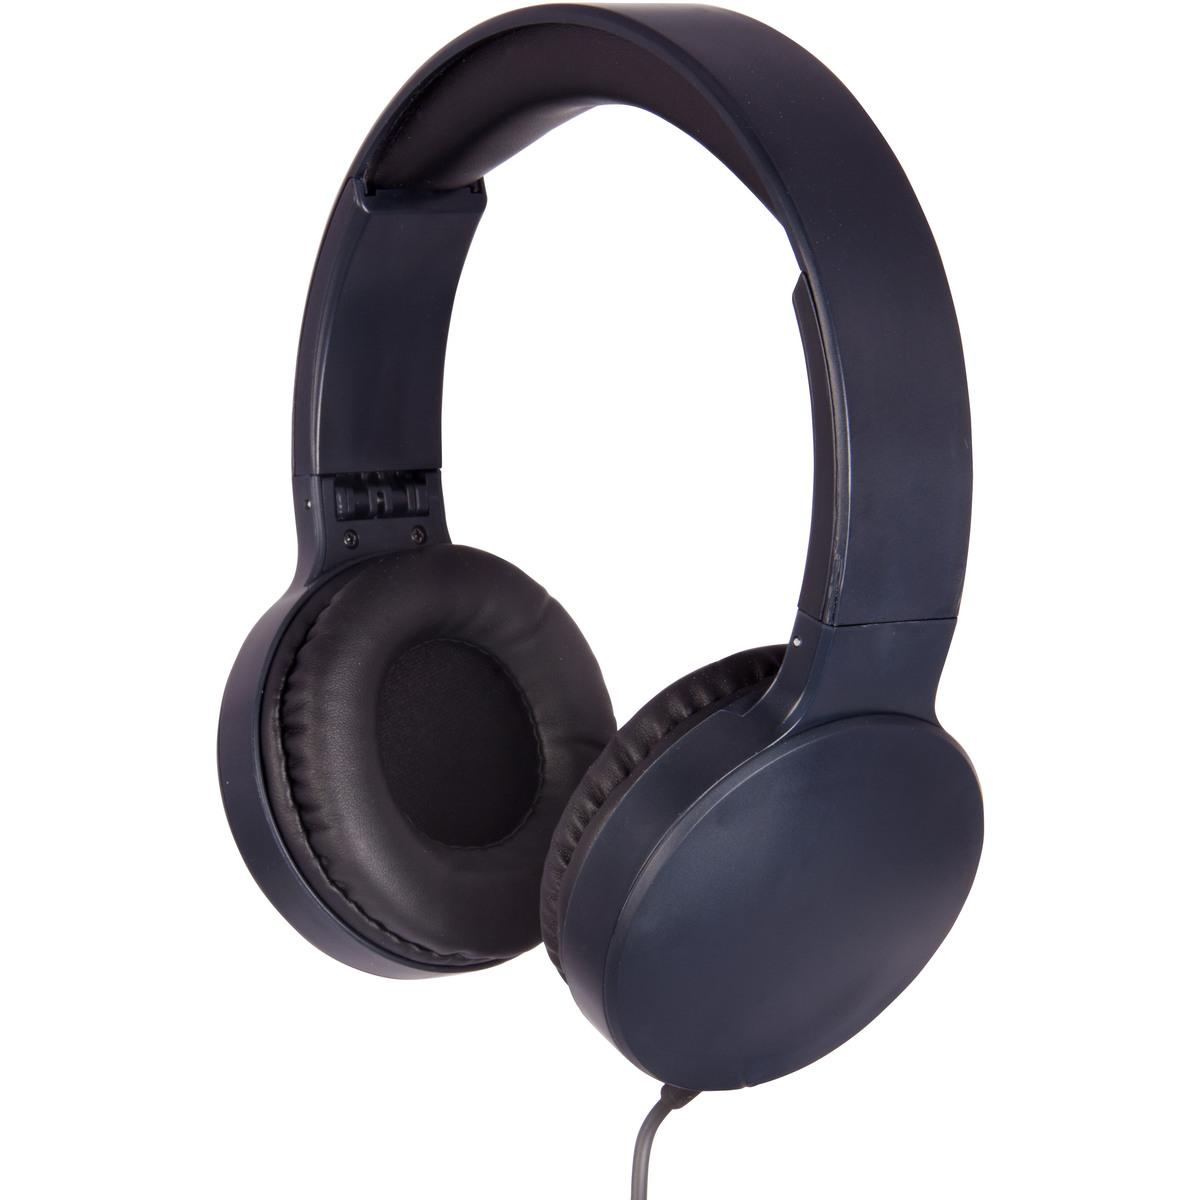 Laser Foldable Padded Wired Headphones – Black